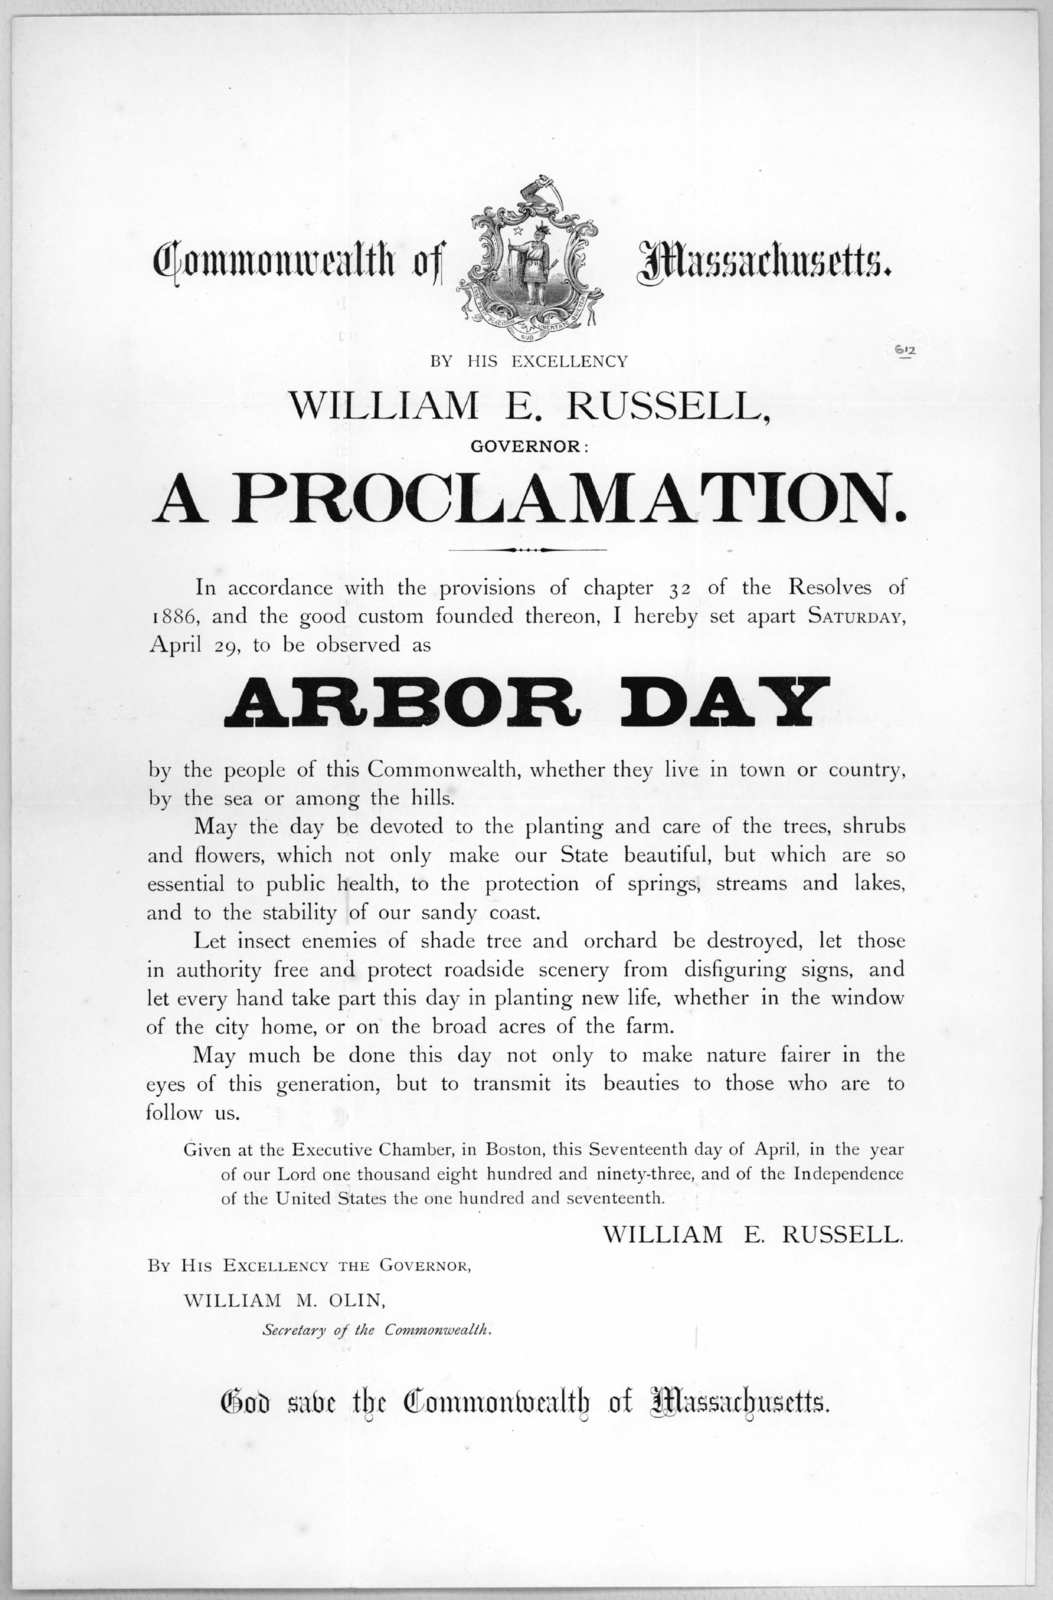 Commonwealth of Massachusetts. By His Excellency William E. Russell, Governor: a proclamation. In accordance with the provisions .... I hereby set apart Saturday, April 29, to be observed as Arbor Day ... Given at the Executive Chamber, in Bosto